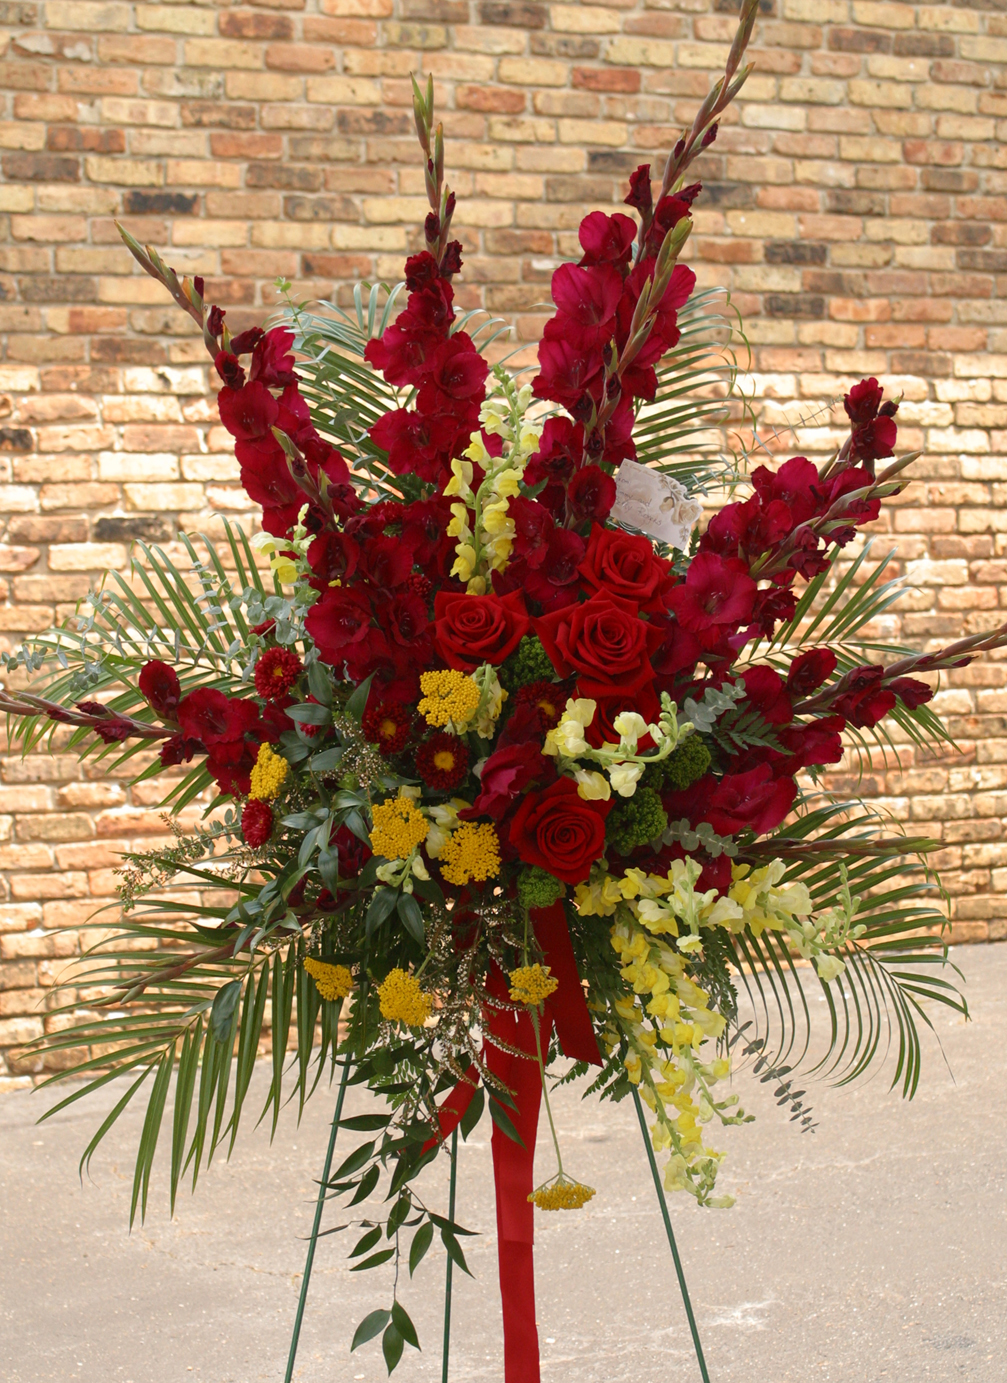 Flowers florist atlanta ga floral arrangement floral design flowers florist atlanta ga floral arrangement floral design classes florist florists flowers to flowers for wedding flowers class flower izmirmasajfo